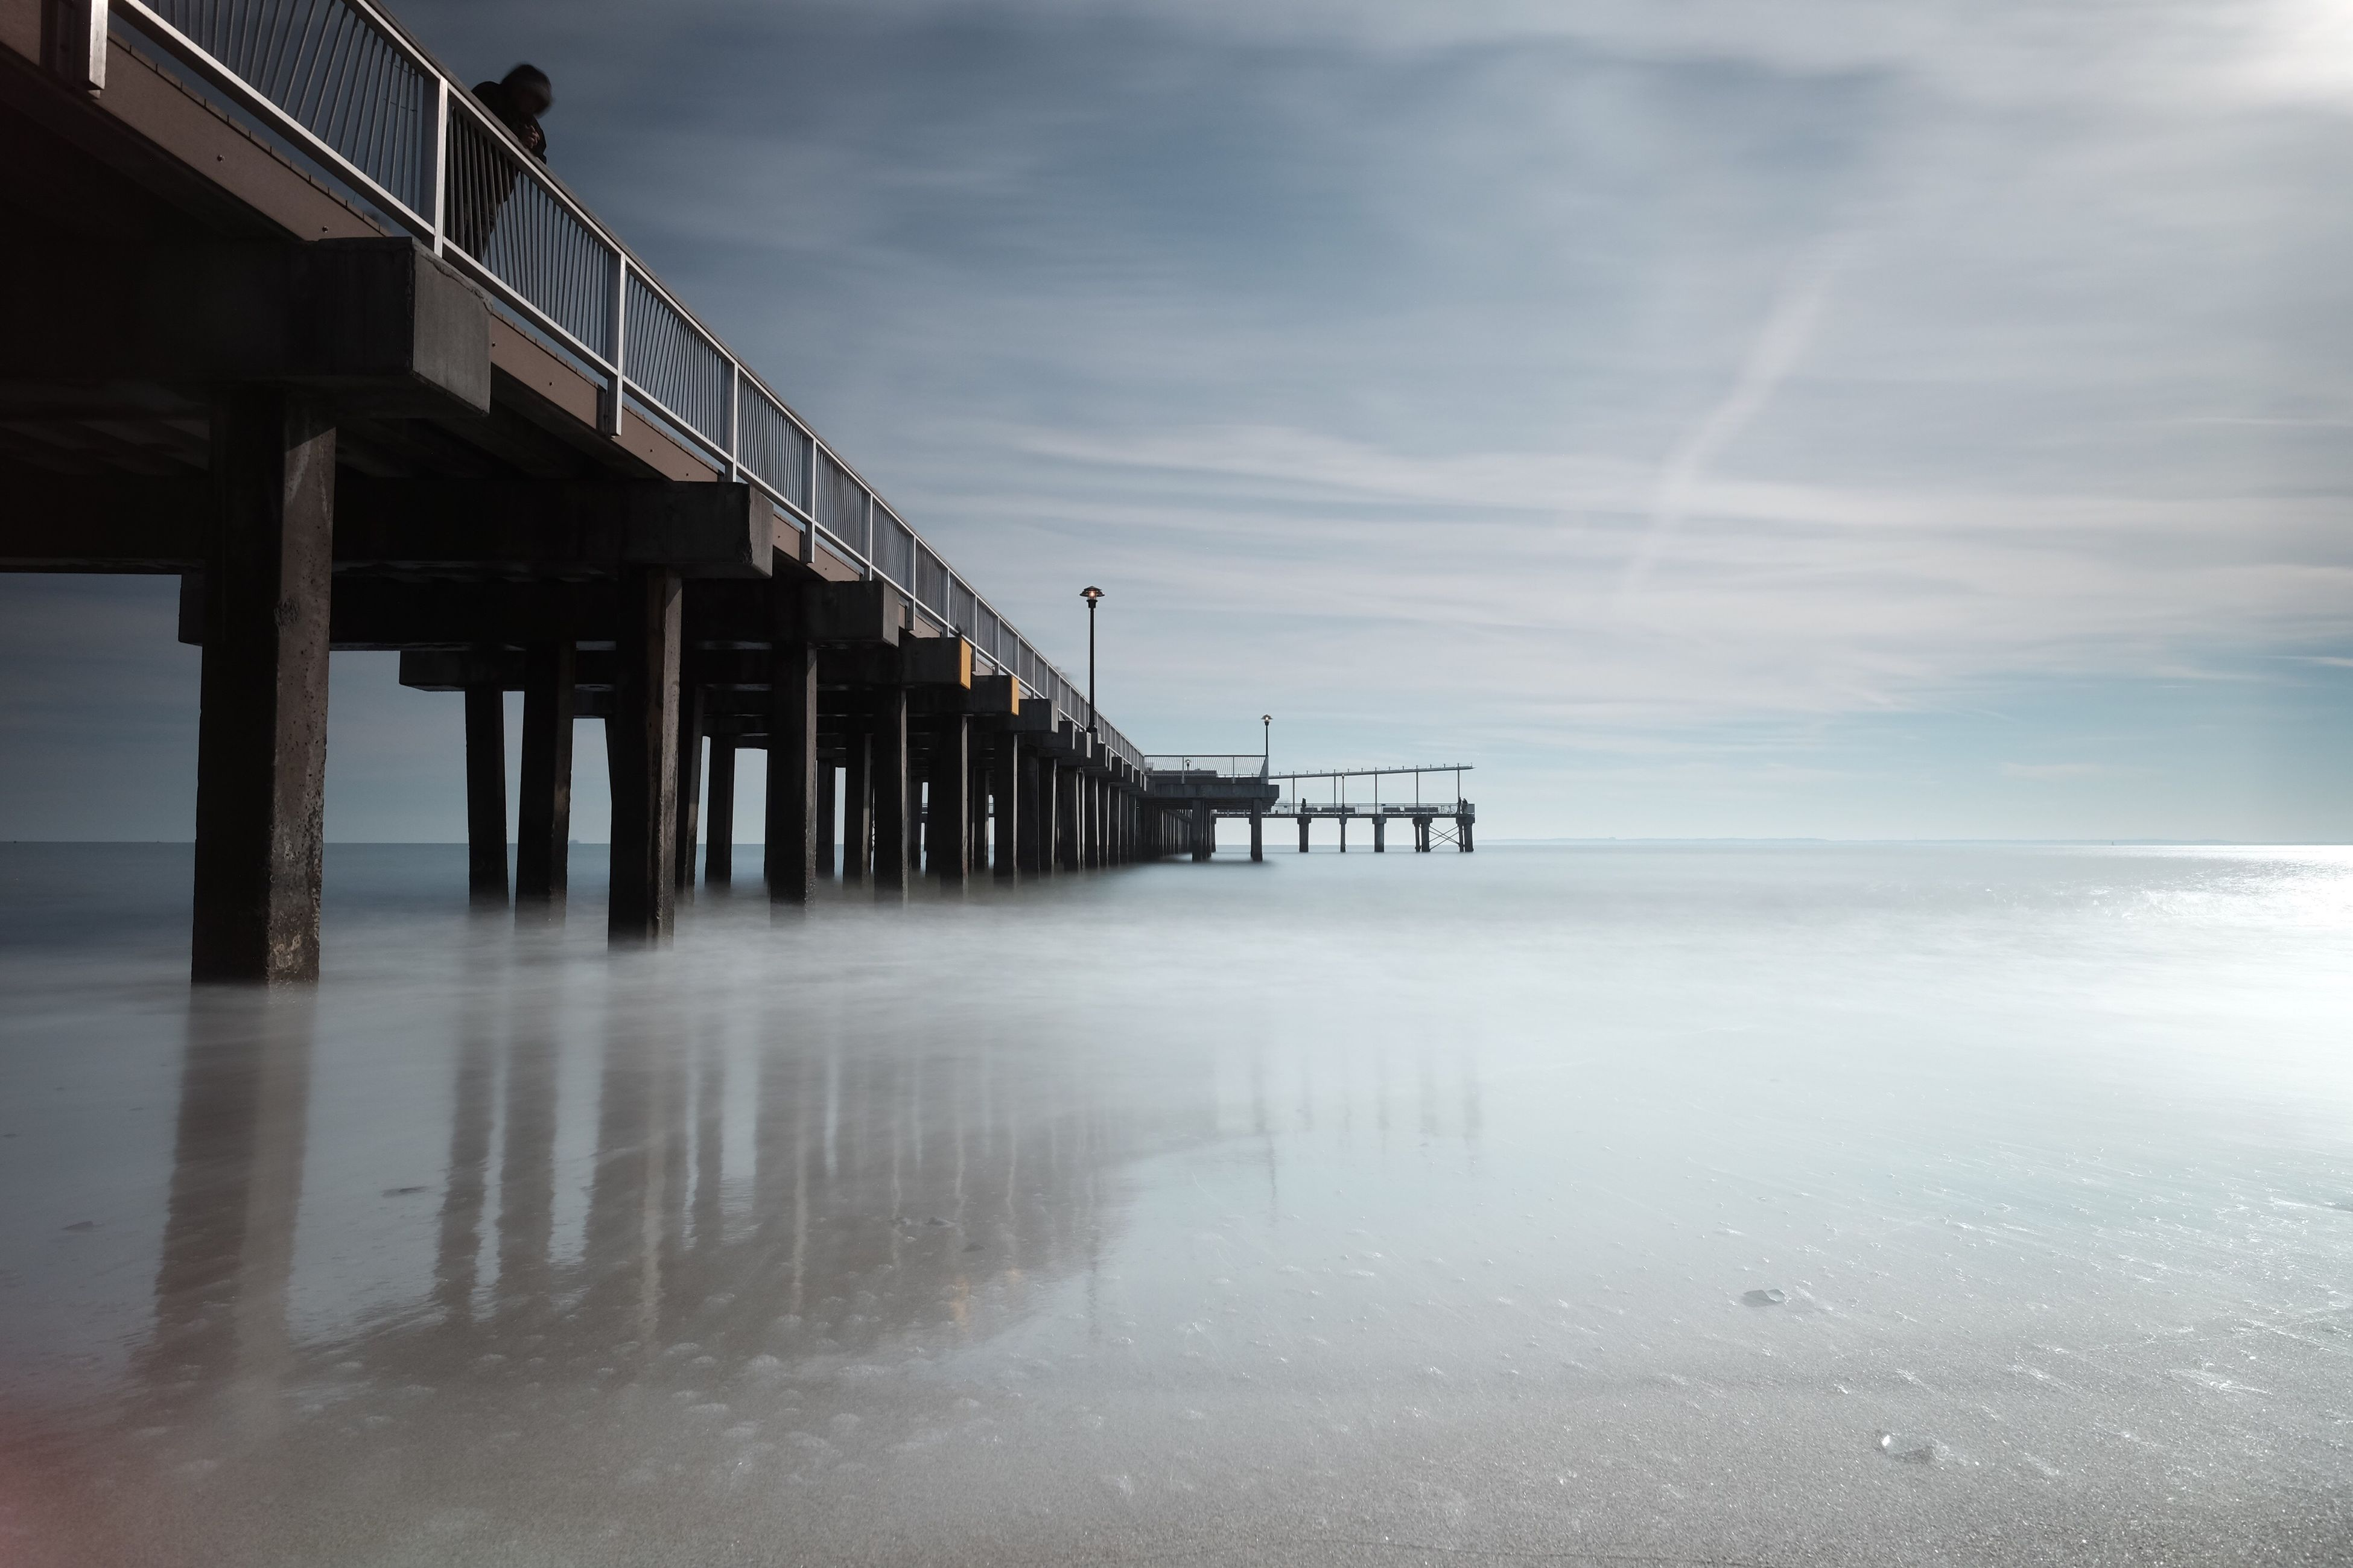 sea, water, beach, sky, horizon over water, pier, built structure, tranquility, tranquil scene, shore, reflection, sand, architecture, scenics, nature, beauty in nature, cloud - sky, waterfront, sunset, wave